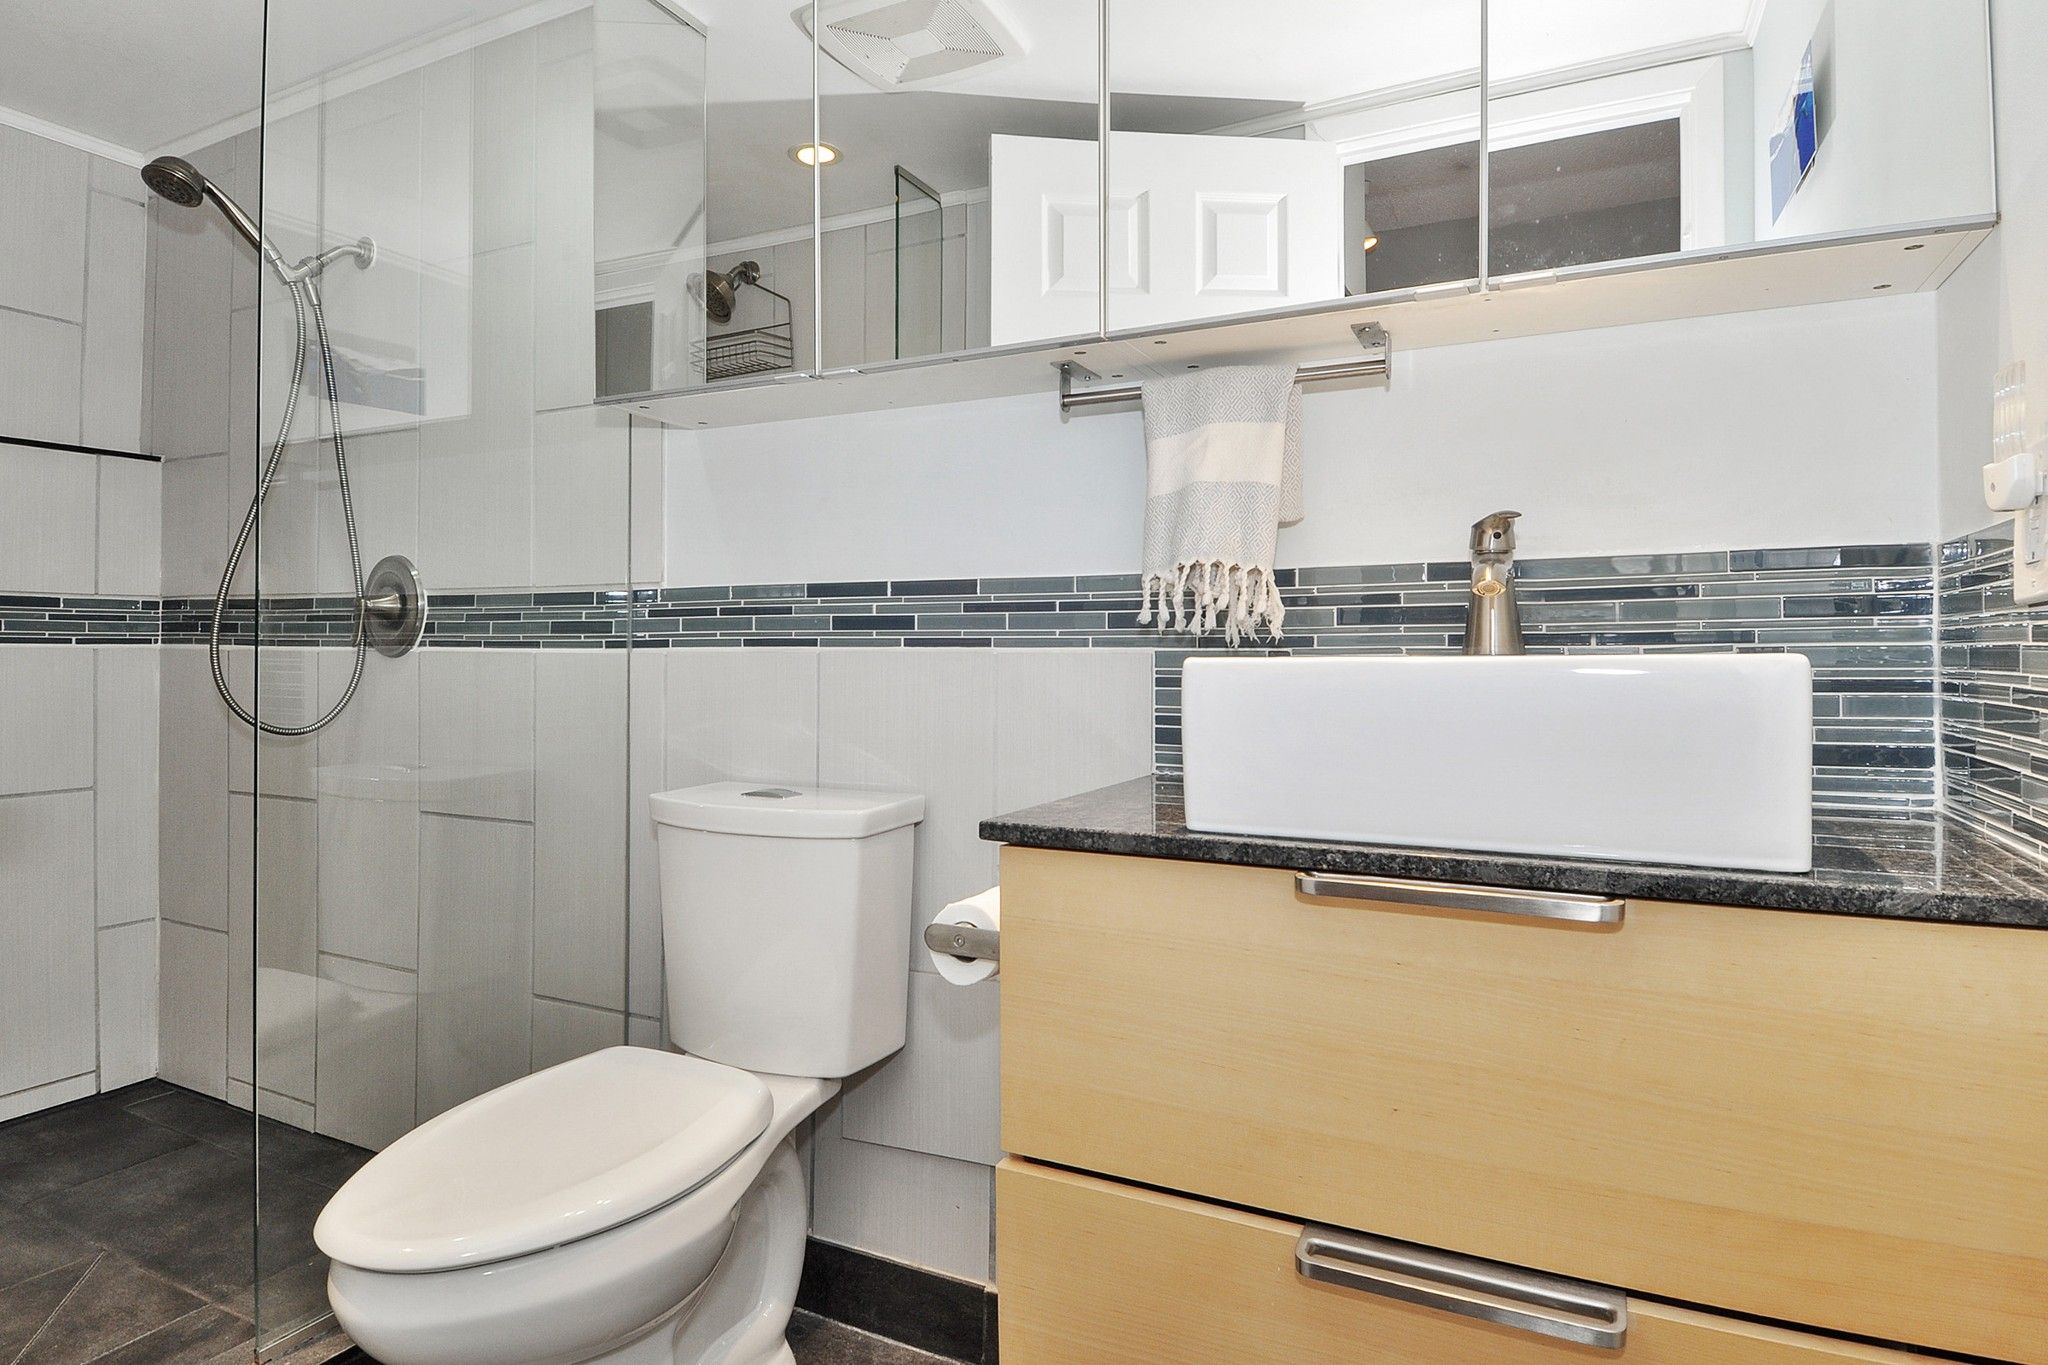 """Photo 13: Photos: 302 391 E 7TH Avenue in Vancouver: Mount Pleasant VE Condo for sale in """"OAKWOOD PARK"""" (Vancouver East)  : MLS®# R2352076"""